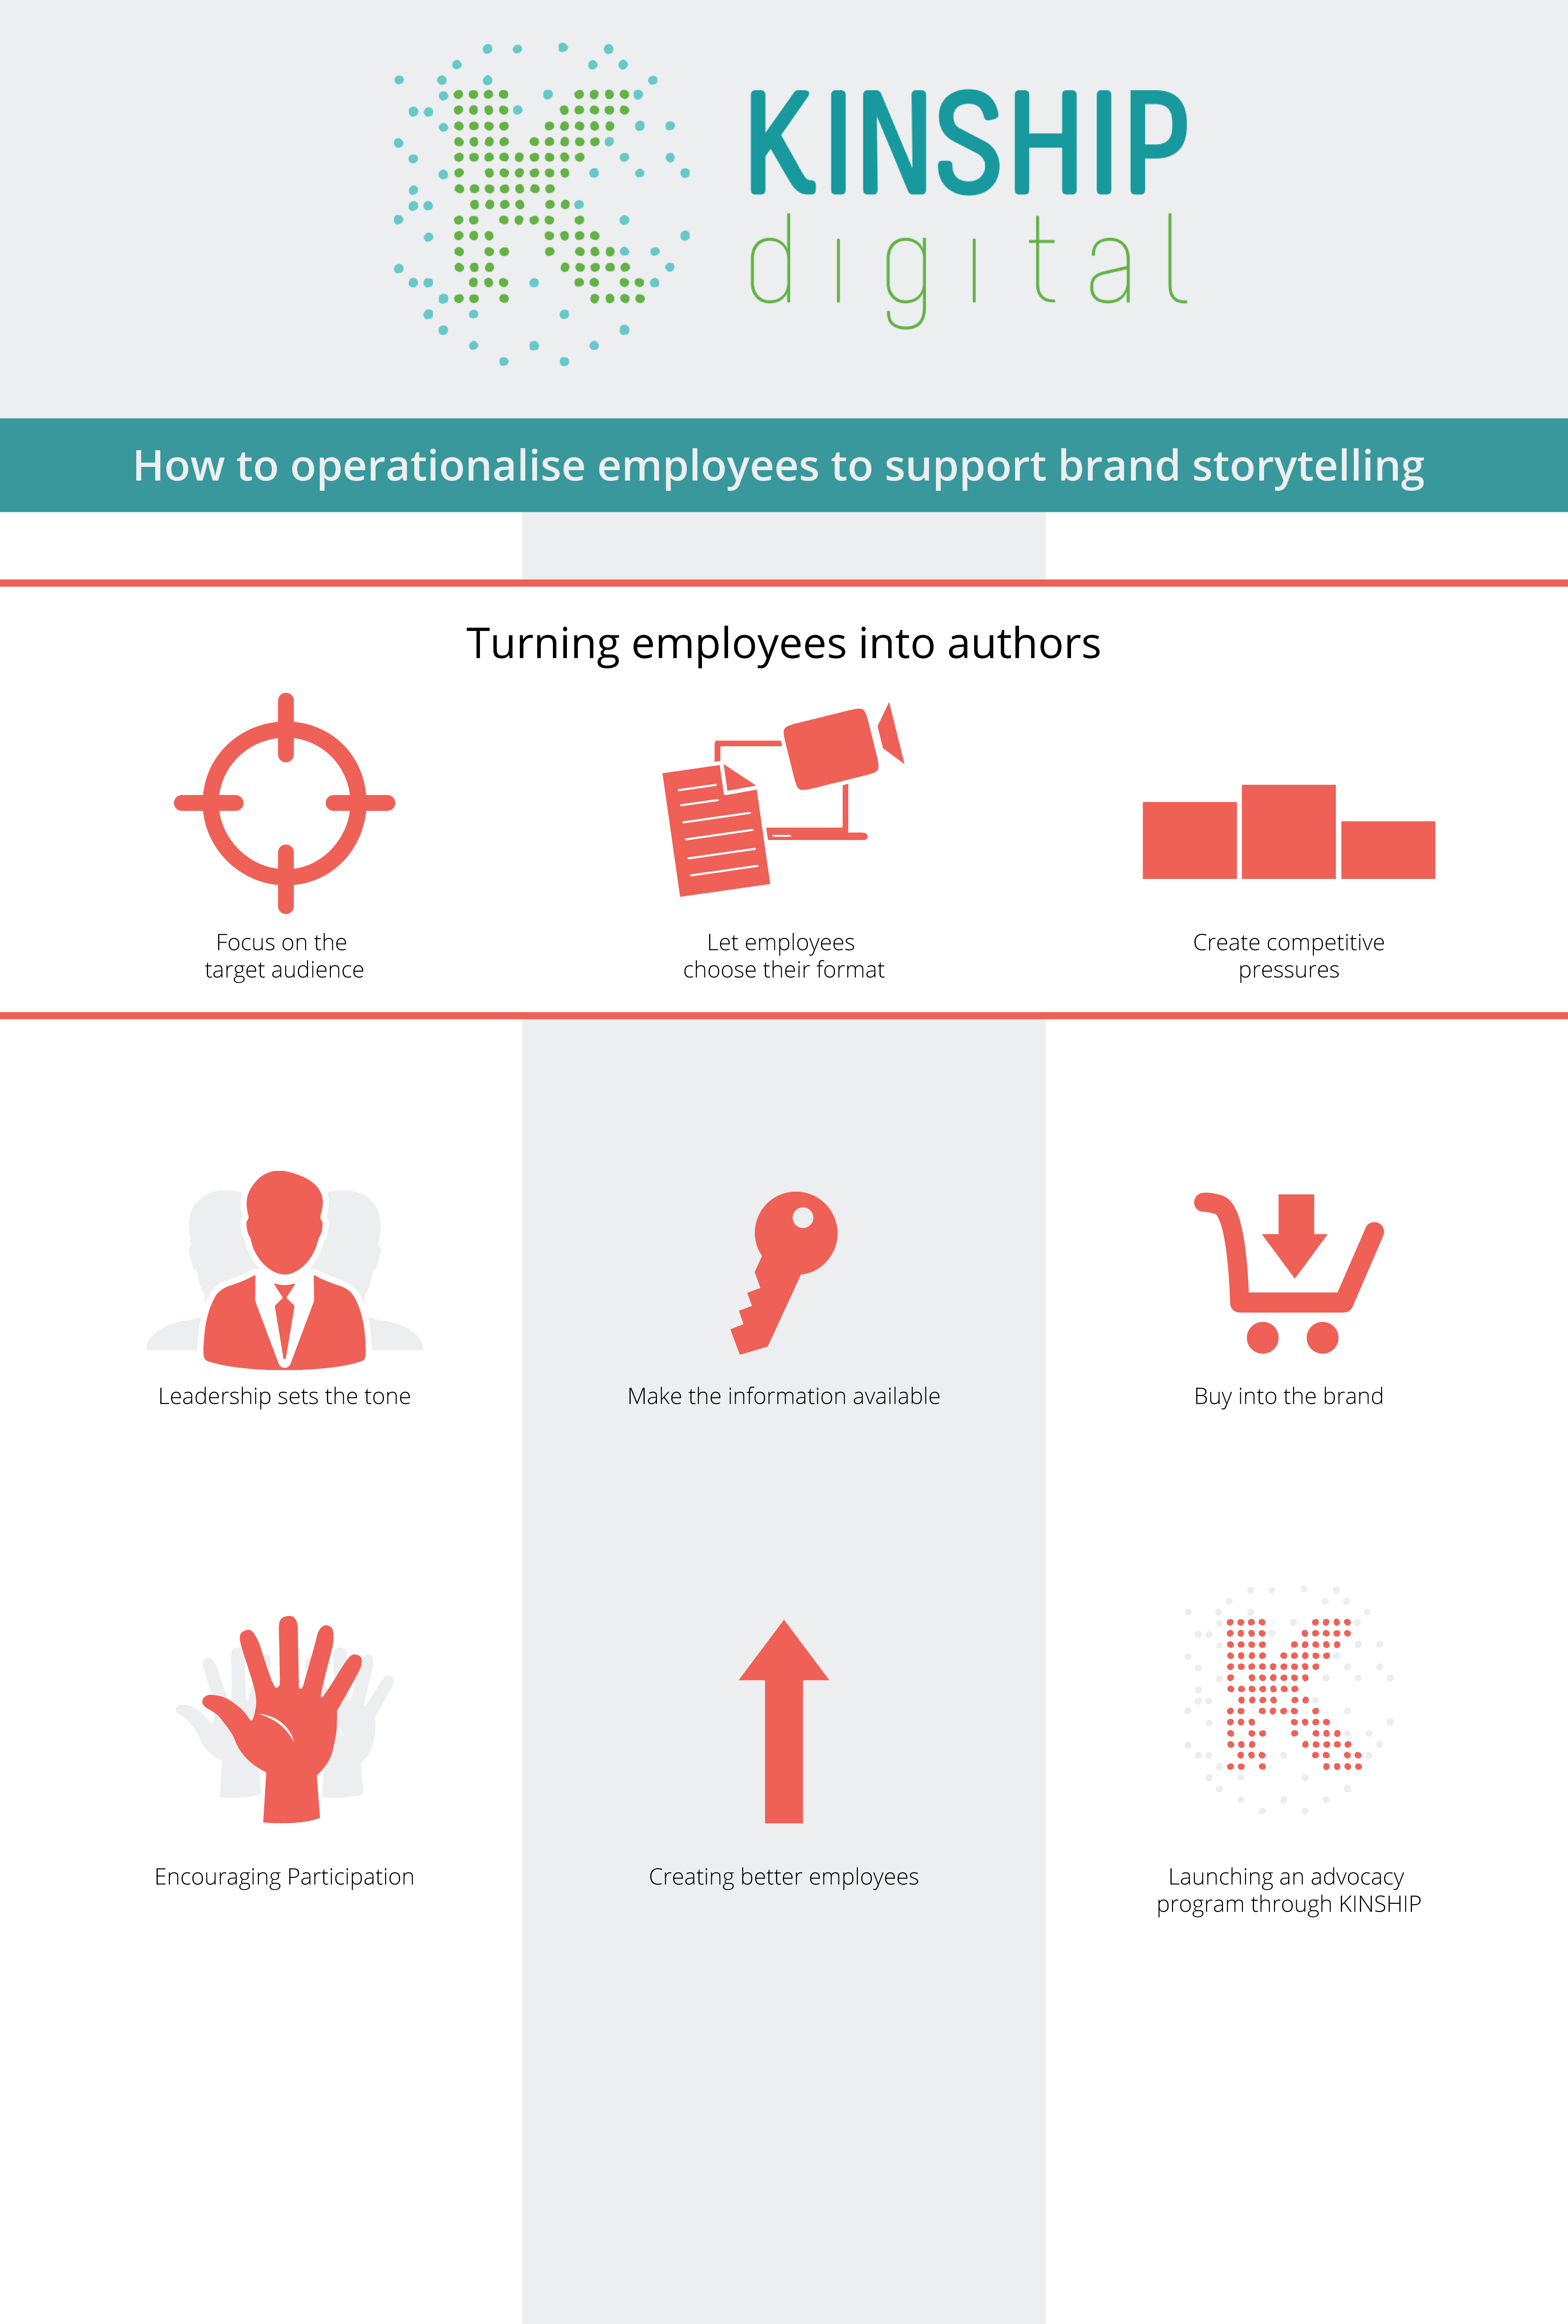 How to operationalise employees to support brand storytelling infographic